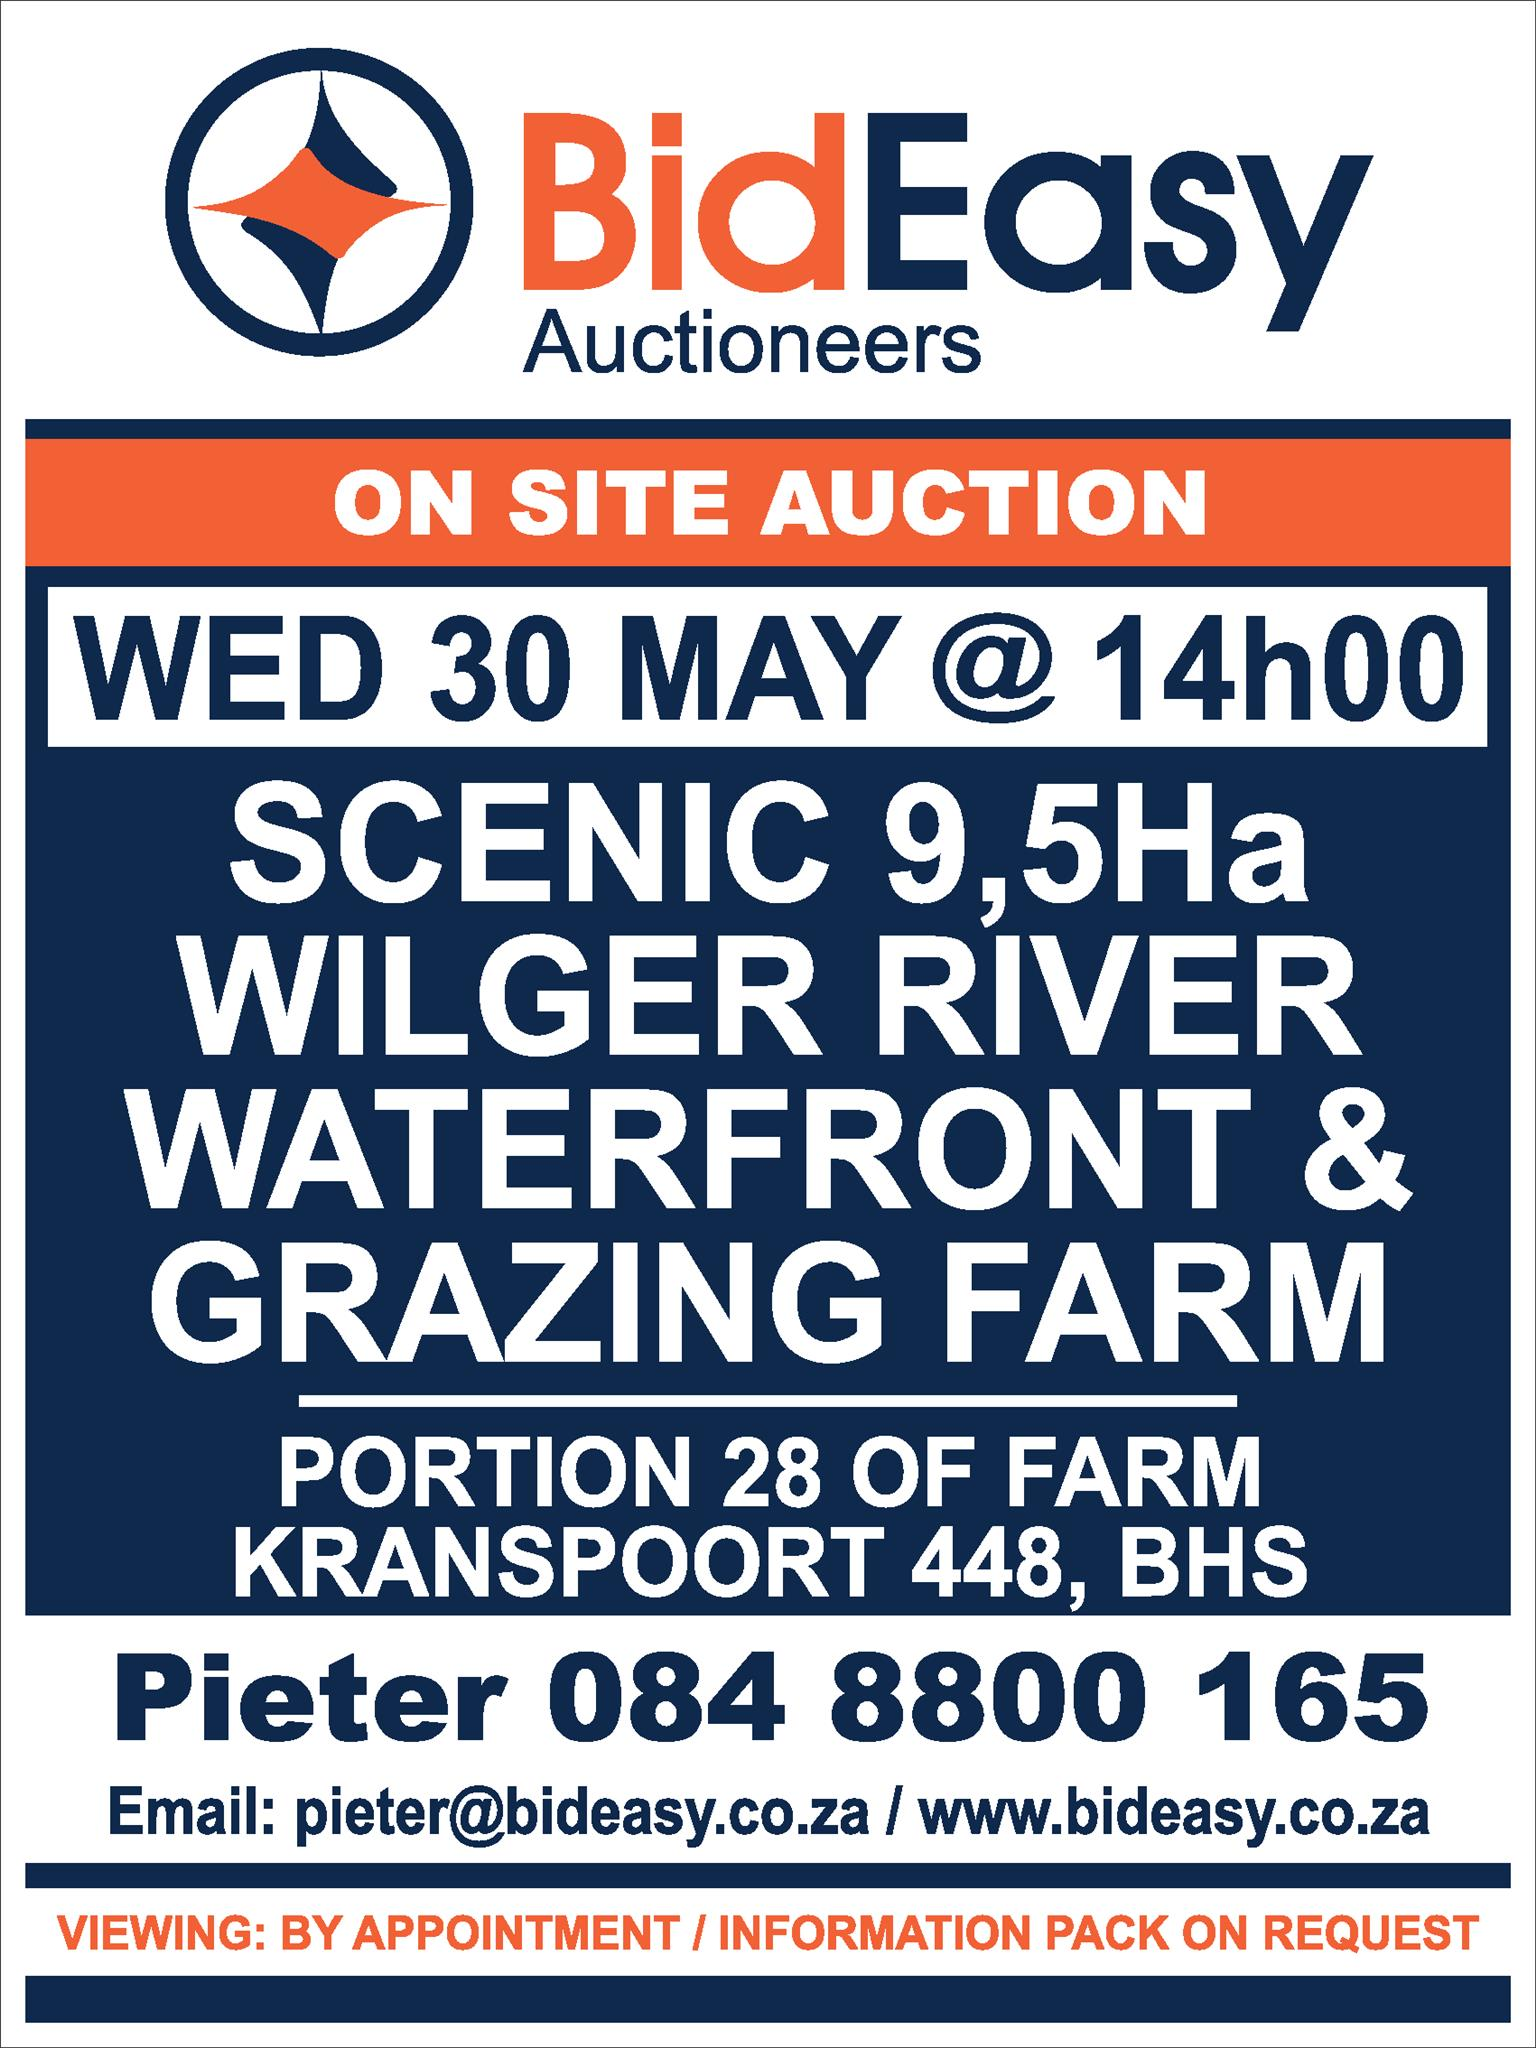 Commercial & residential auctions in Bronkhorstspruit